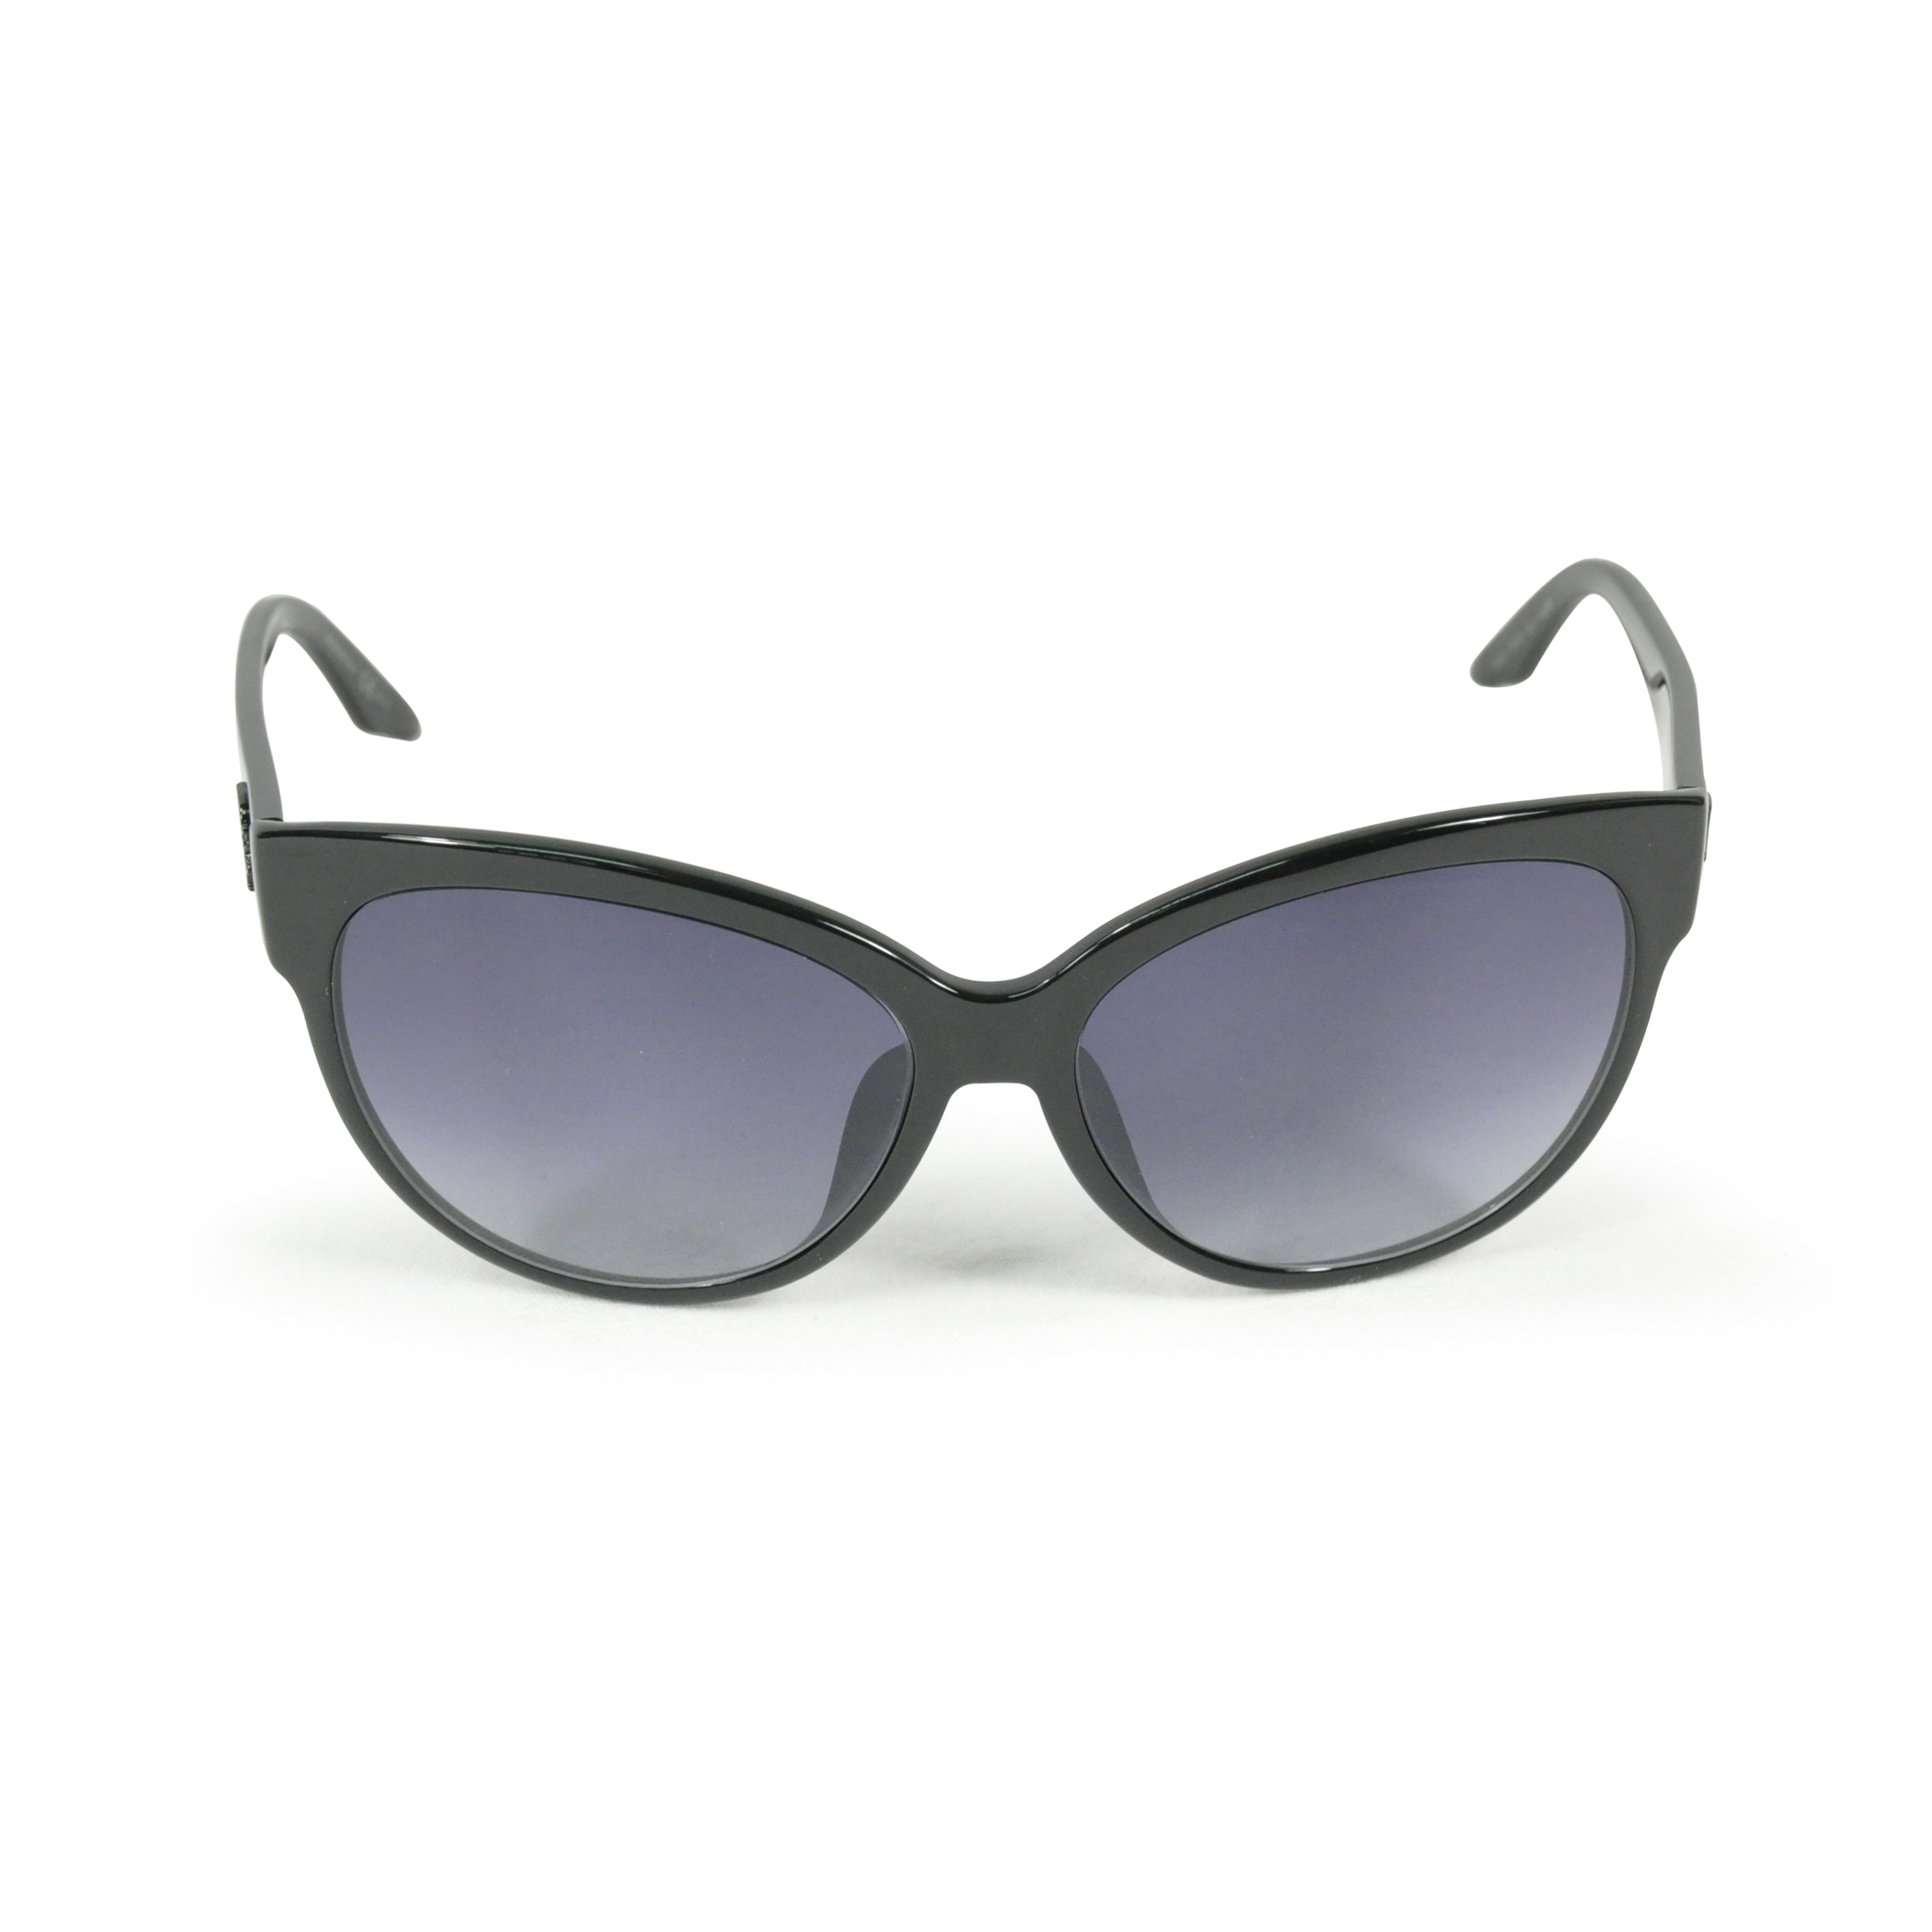 dior soft 1 sunglasses - HD 3684×3684